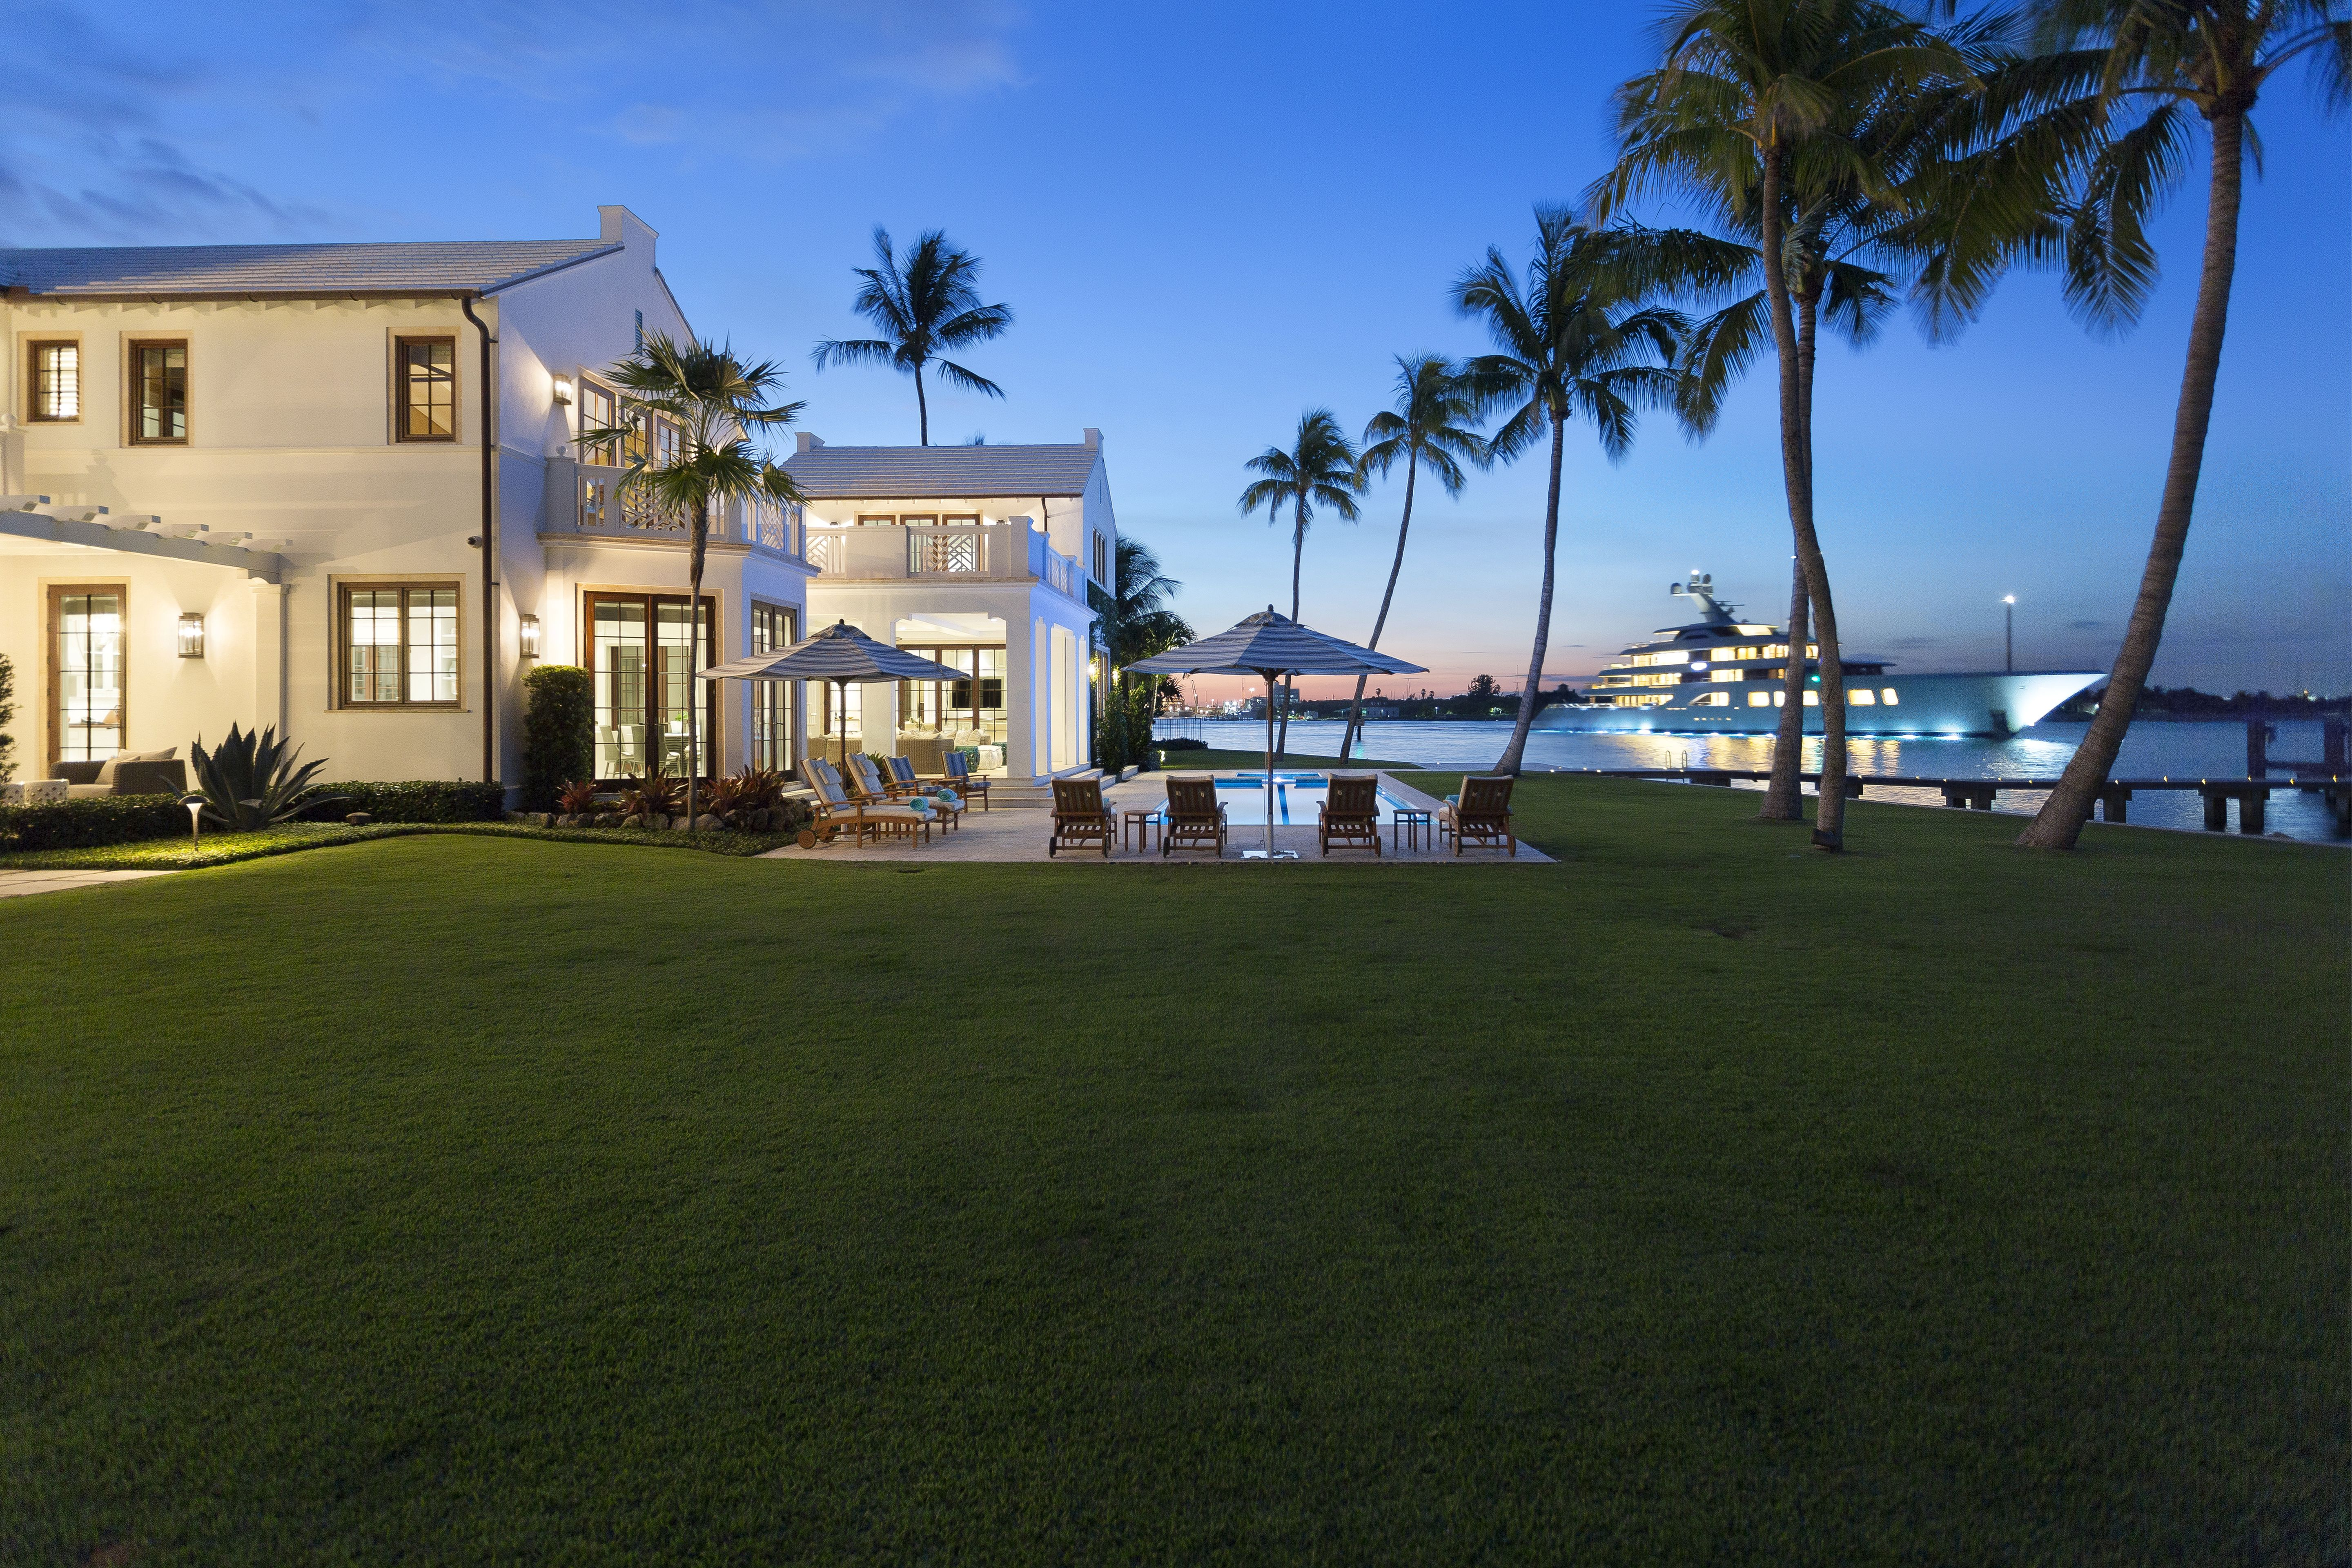 Palm Beach Luxury Homes And Palm Beach Luxury Real Estate Property - Contemporary-west-palm-beach-property